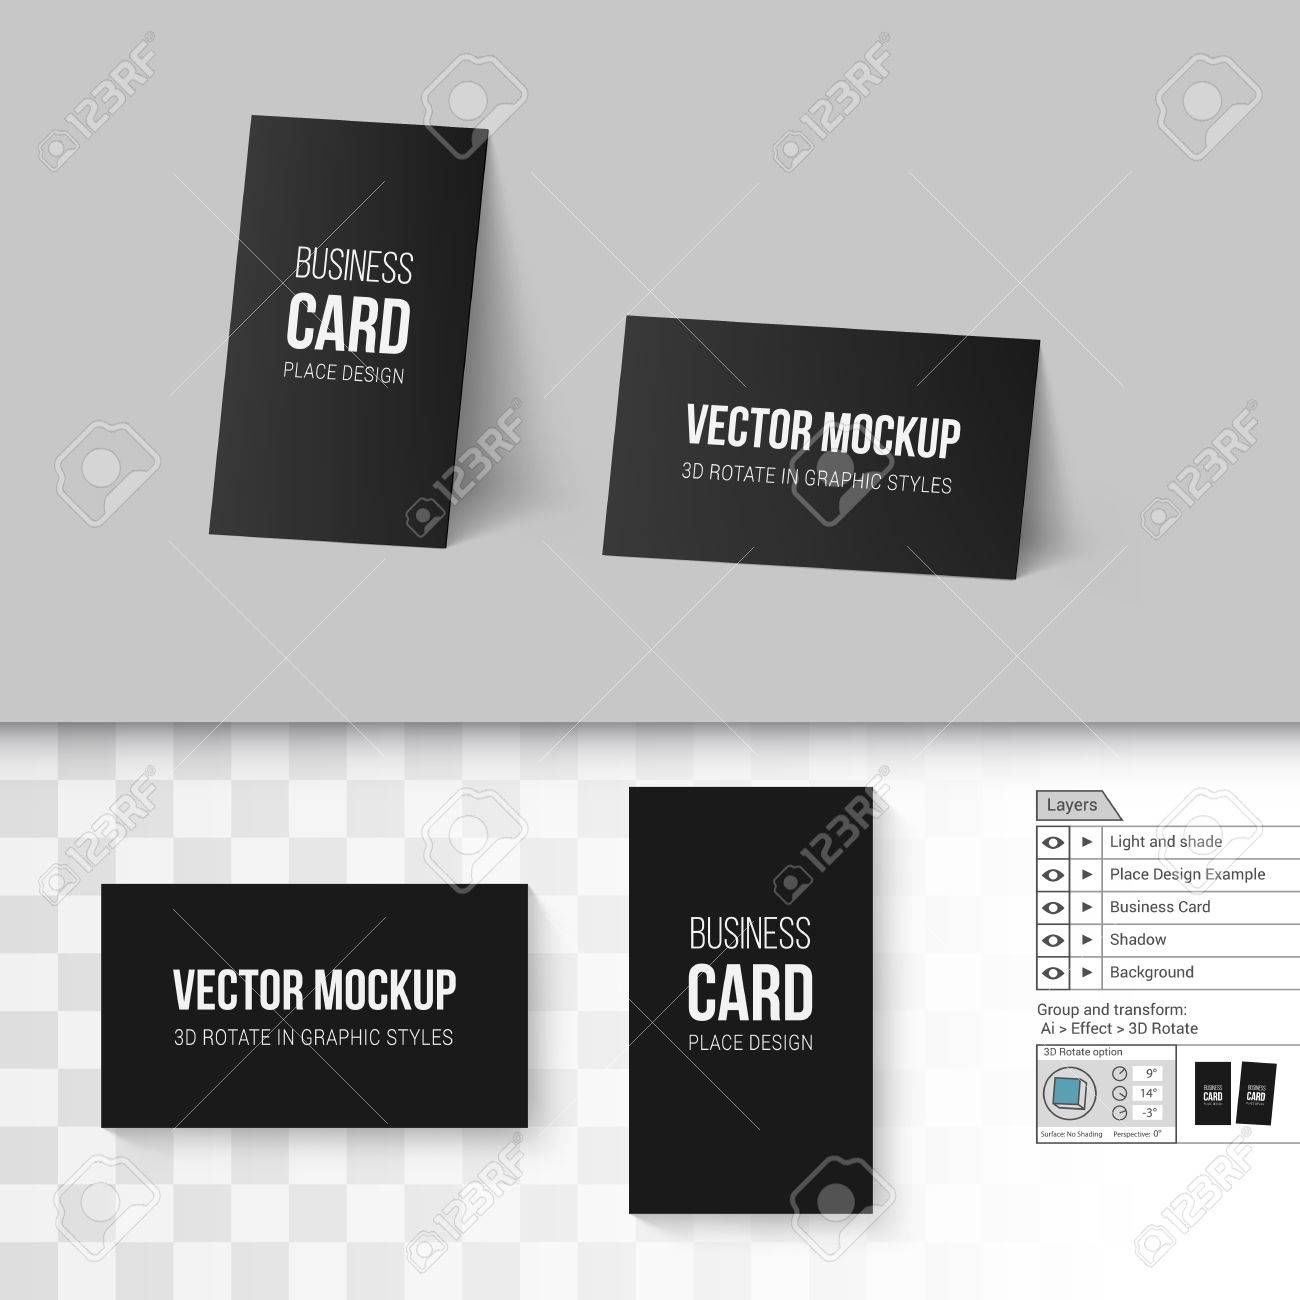 Black Business Cards Template Corporate Identity Branding Mock Up With 3D Rotate Options On